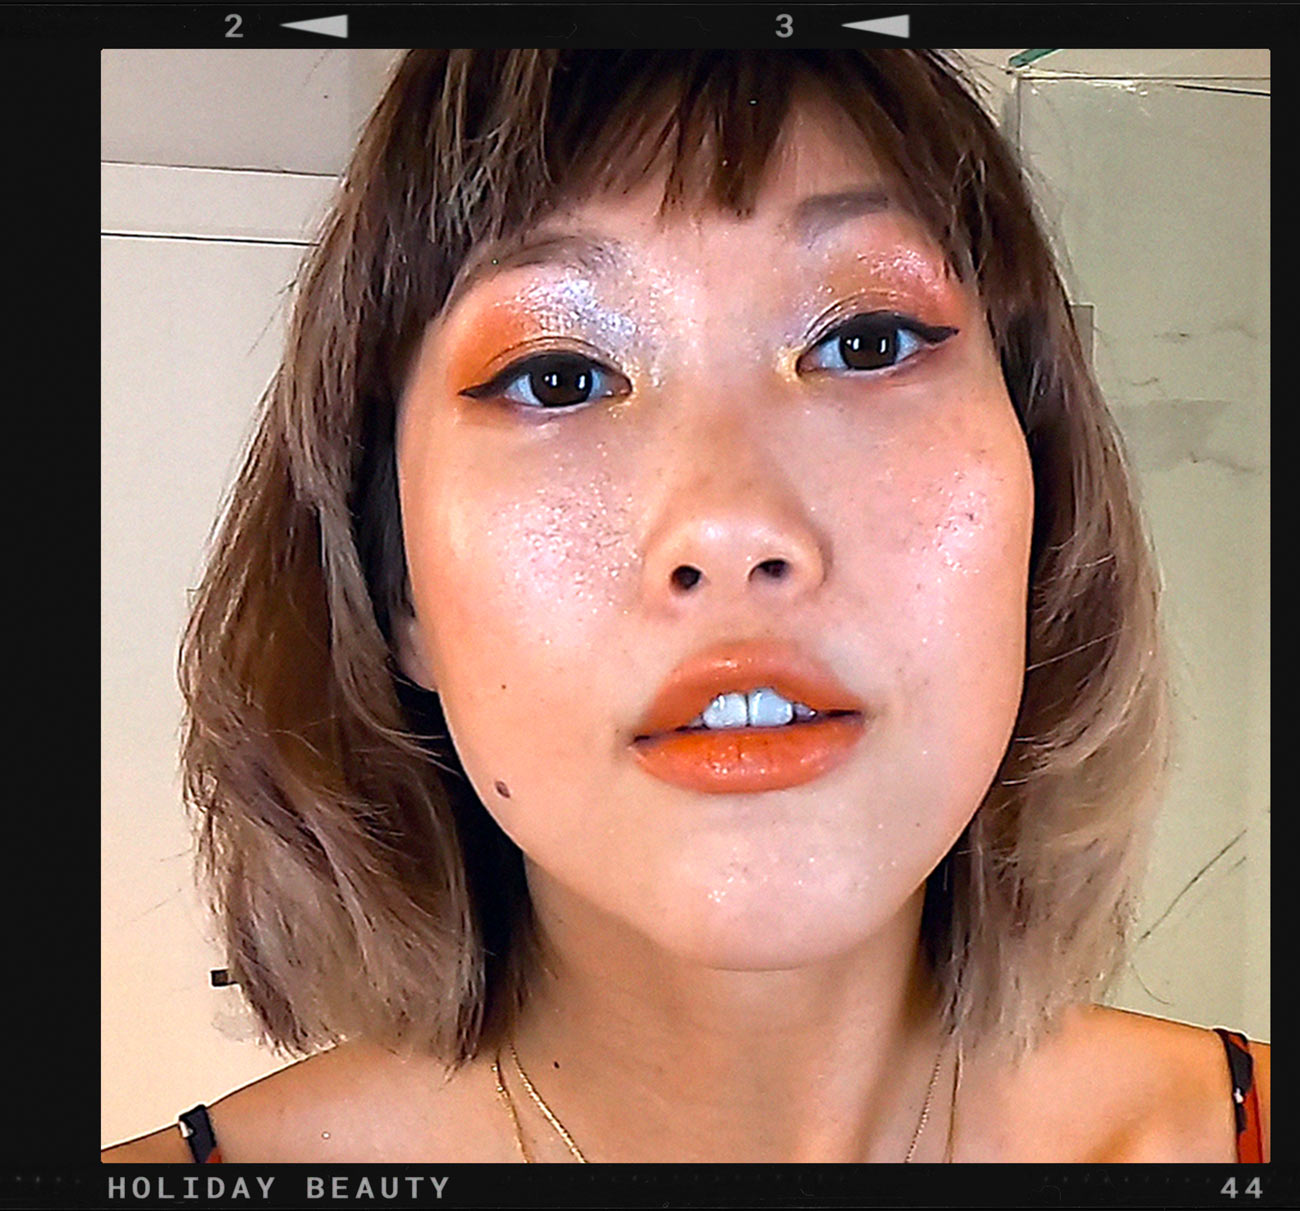 Model Angie Ng doing a make-up tutorial video